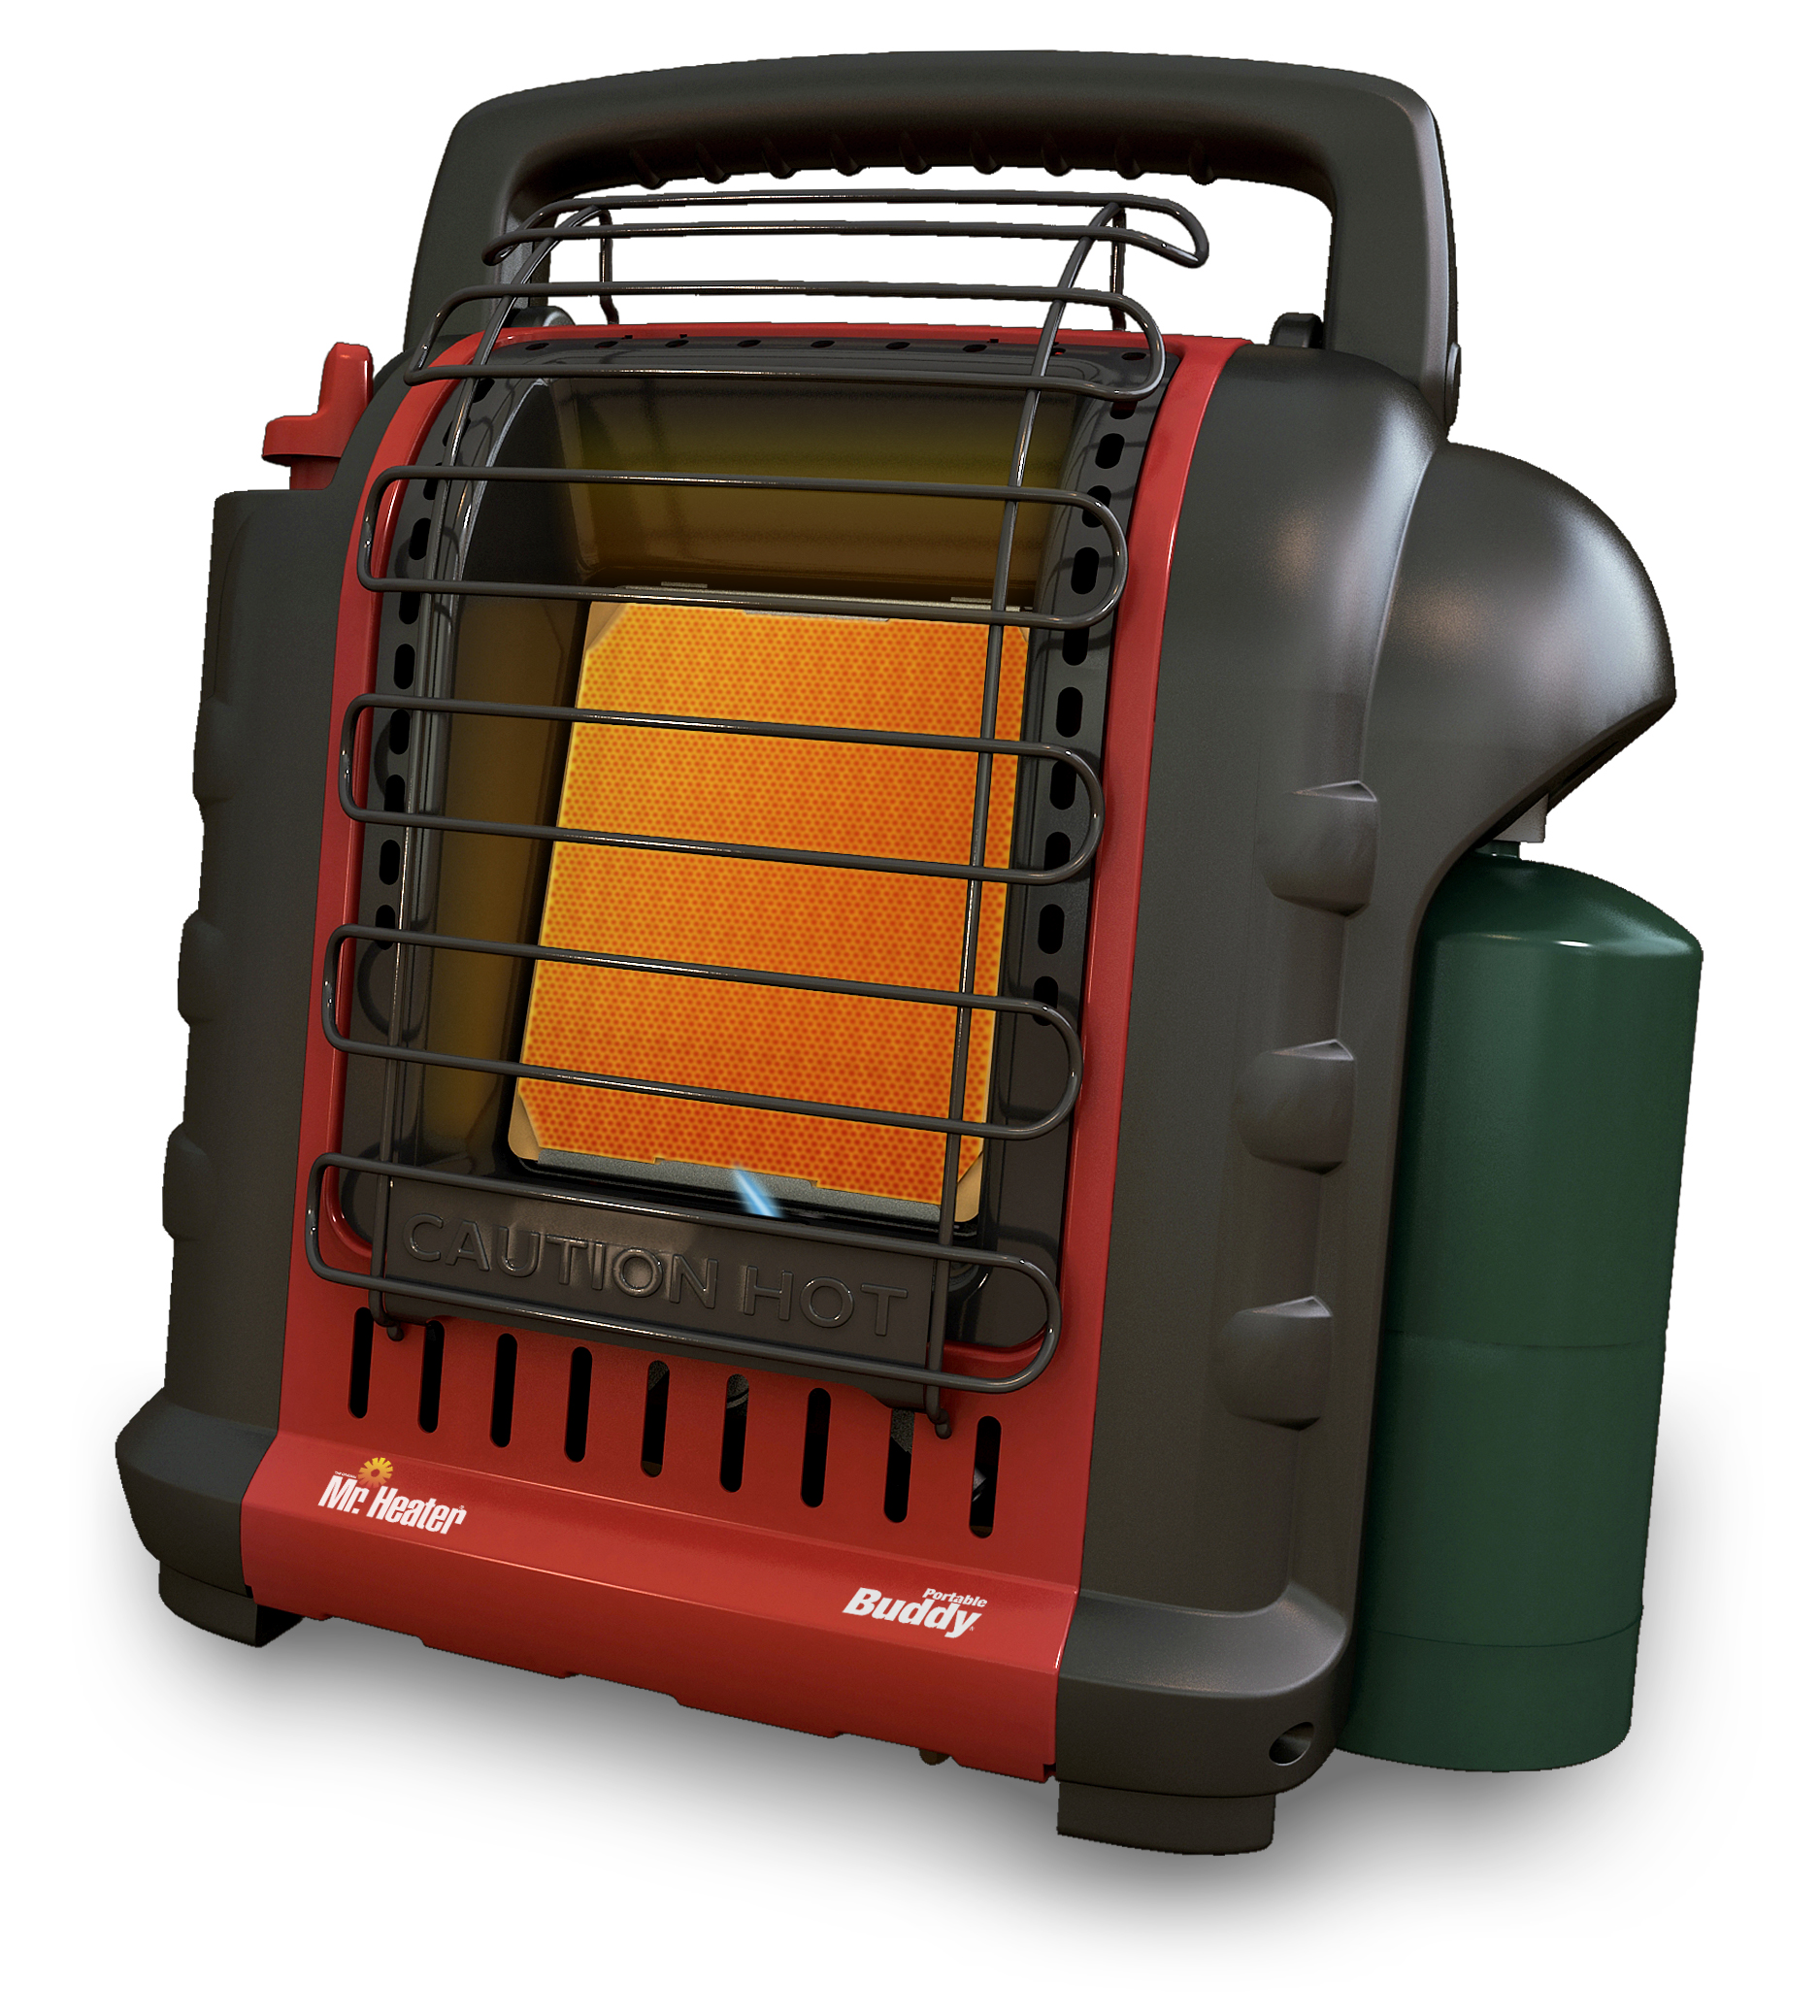 Mr Heater Portable Buddy Heater (Massachusetts/Canada)